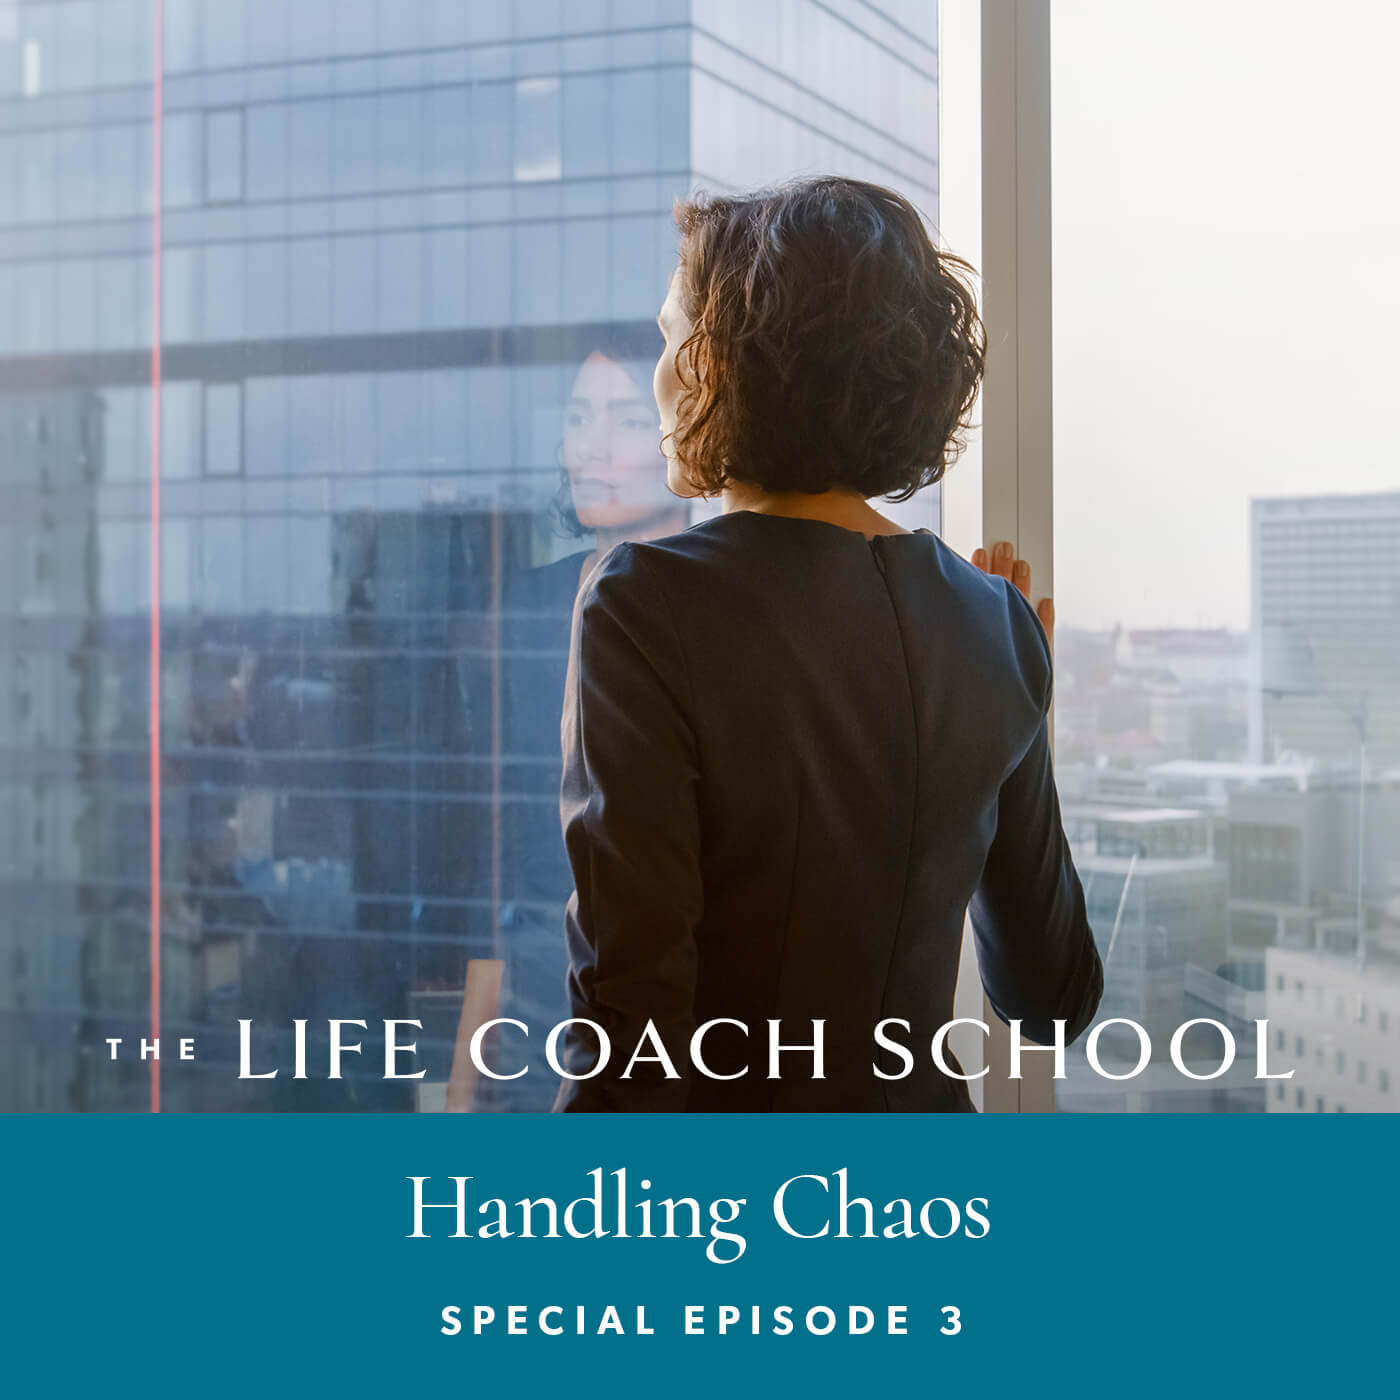 The Life Coach School Podcast with Brooke Castillo | Special Episode | Handling Chaos 3